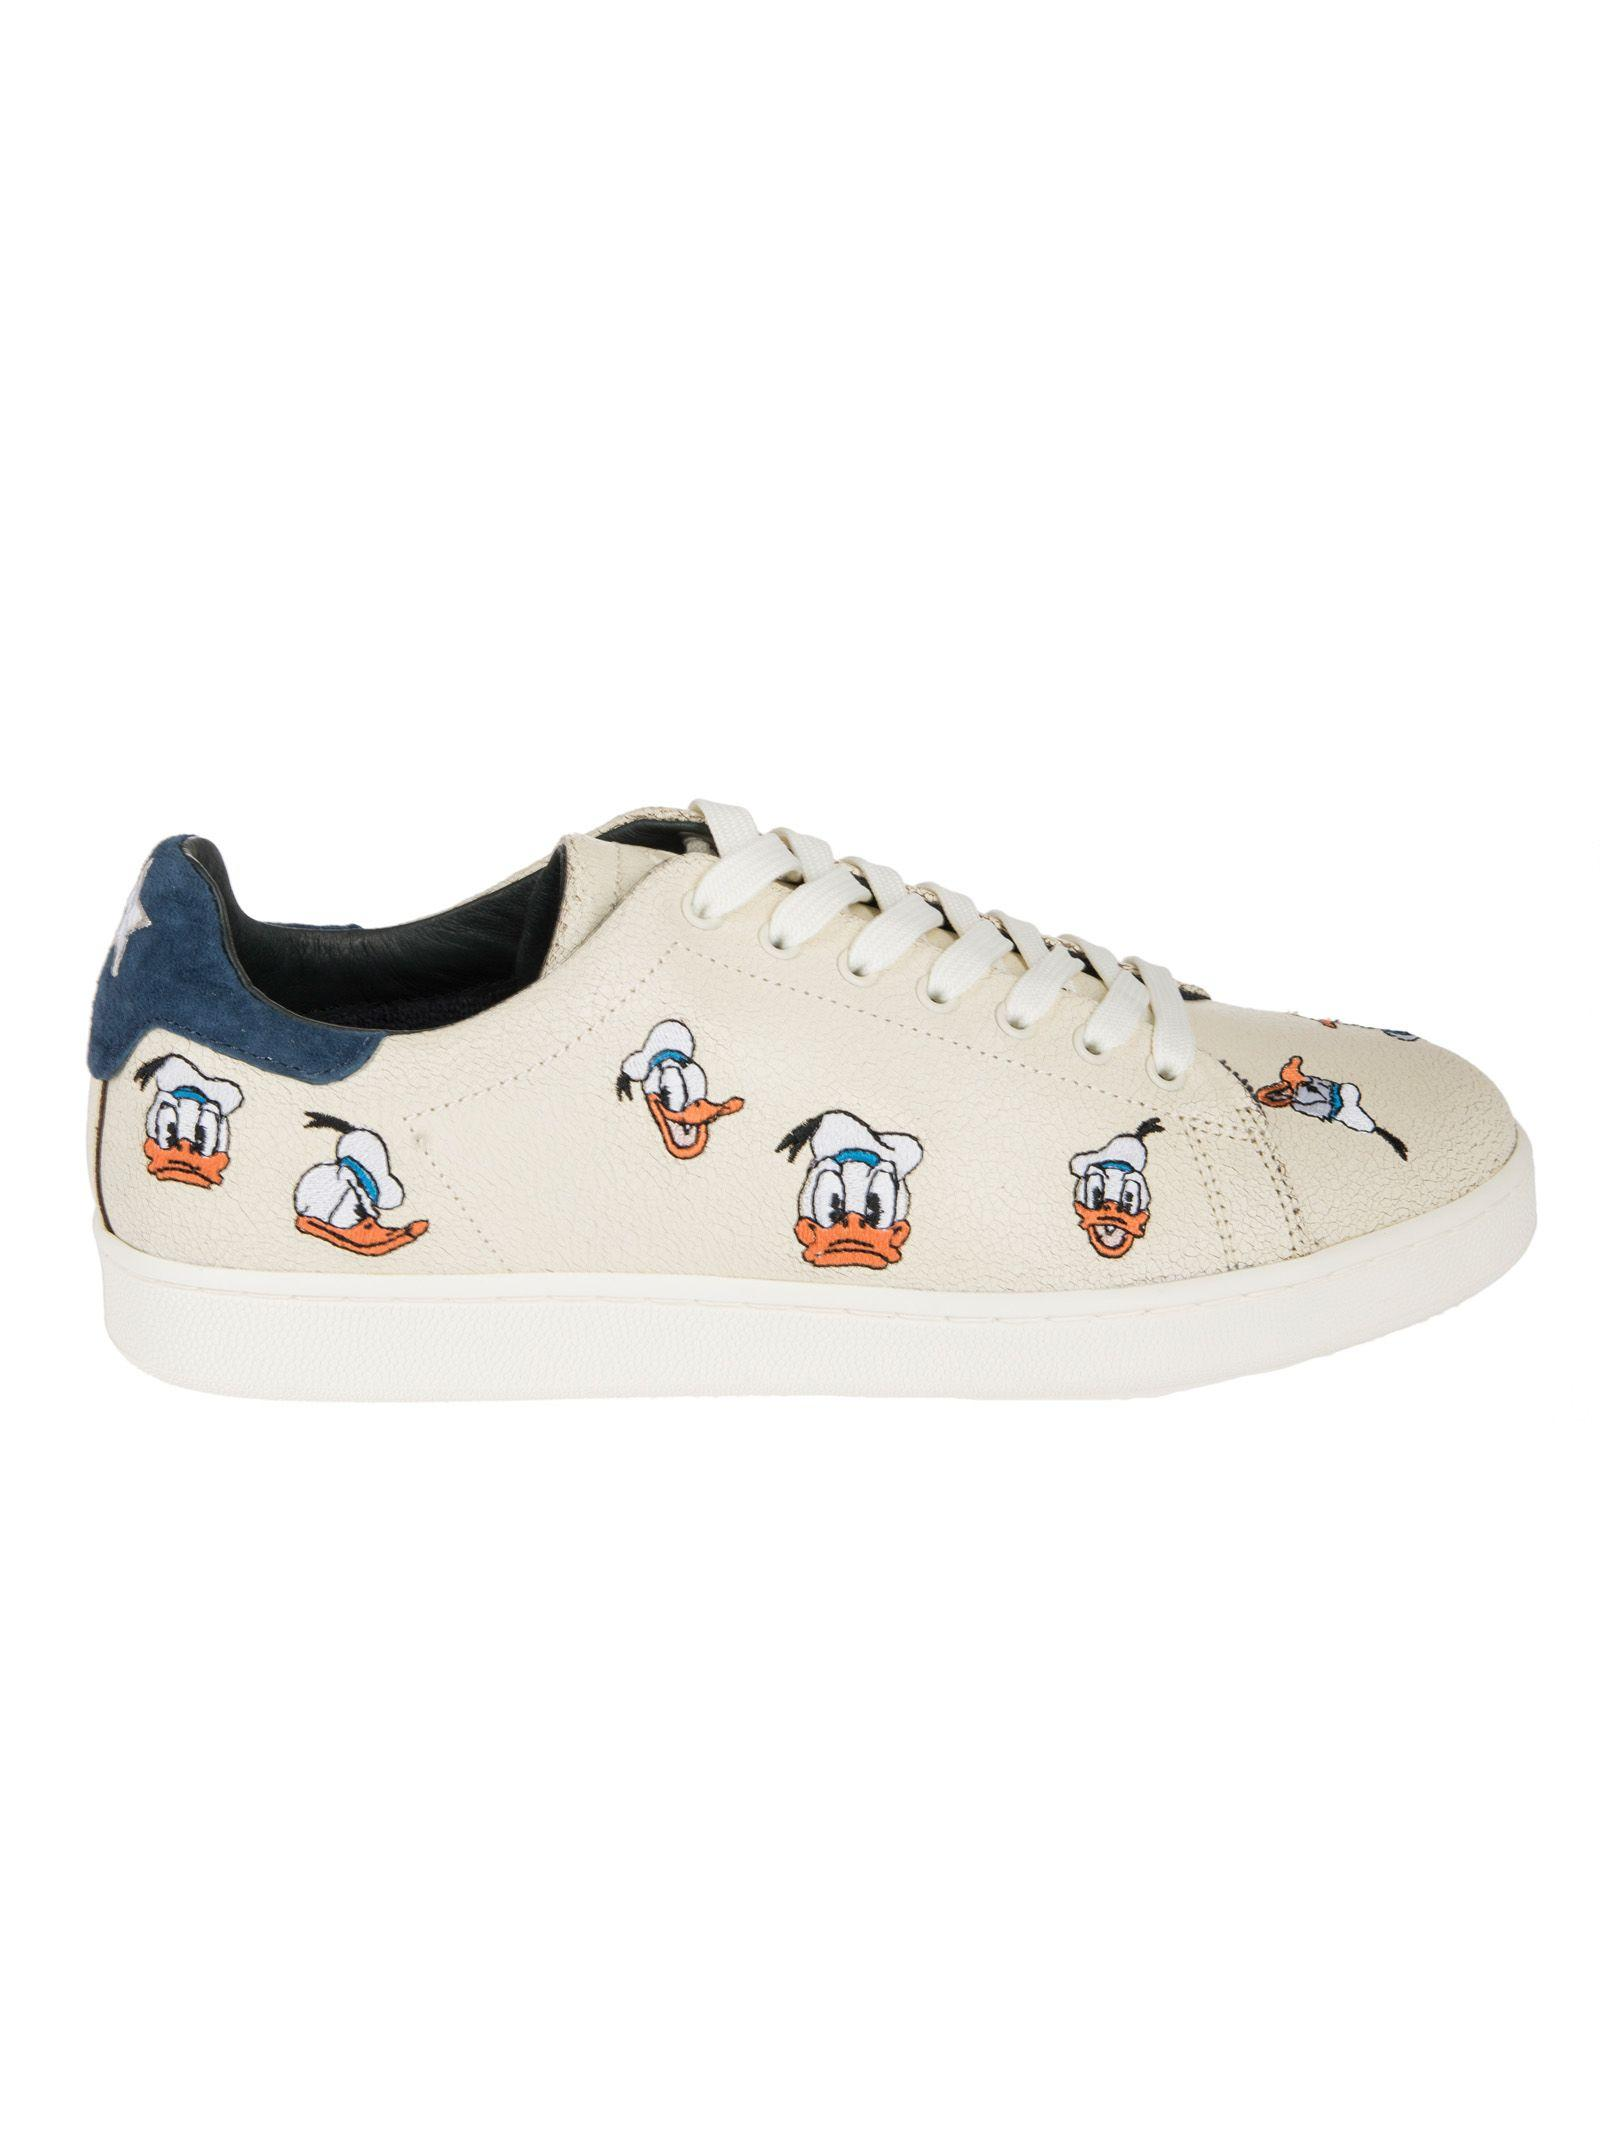 Moa Usa Moa Master Of Arts Donald Duck Print Sneakers In White